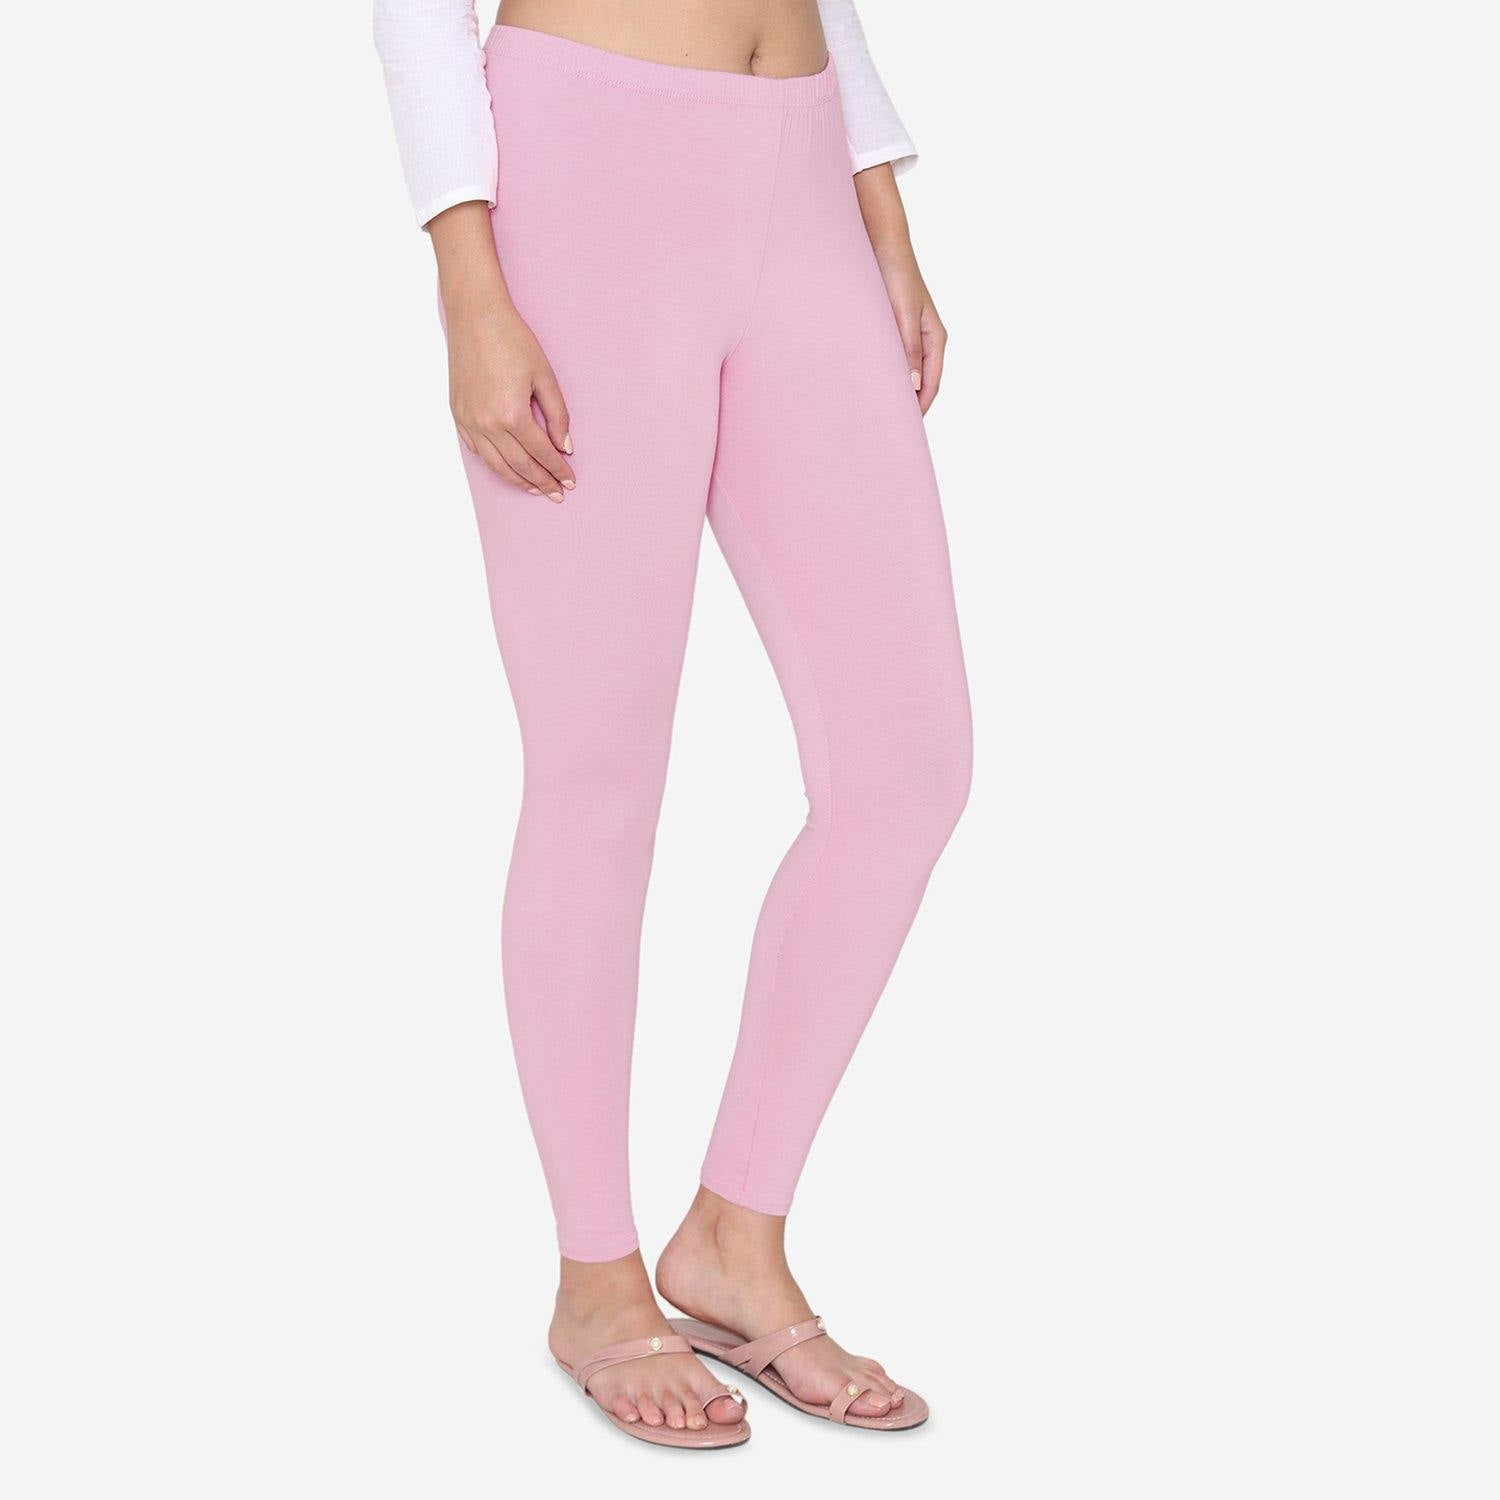 Vami Women's Cotton Stretchable Ankle Leggings - Royal Pink